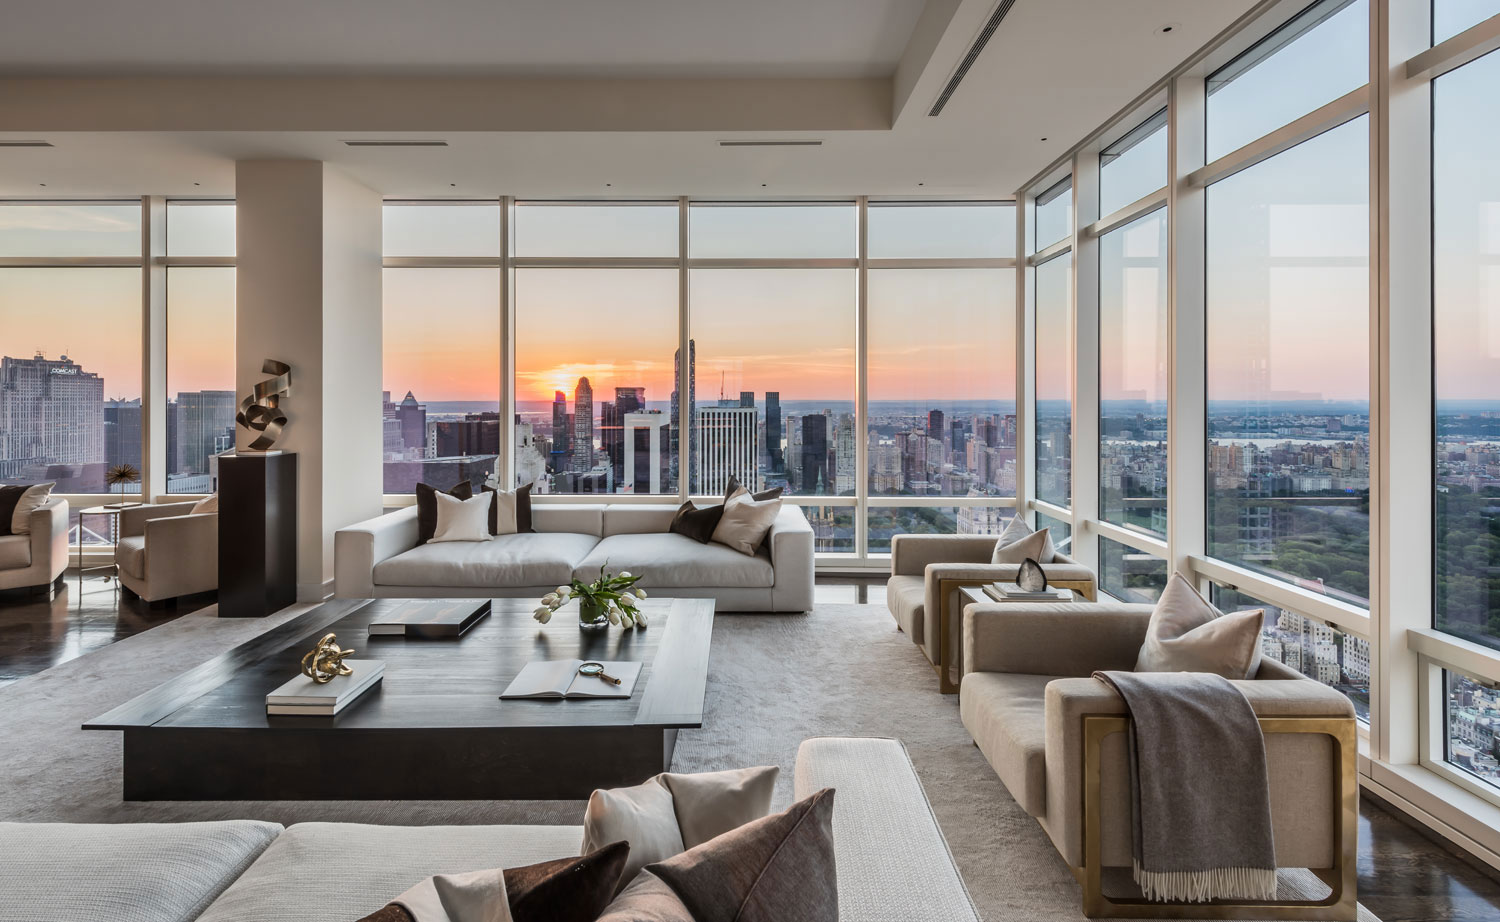 Within 15 minutes of both the Wollman Rink and the Rink at Rockefeller Center, this ultra-luxurious penthouse is located in one of Manhattan's premier condominium buildings, One Beacon Court.